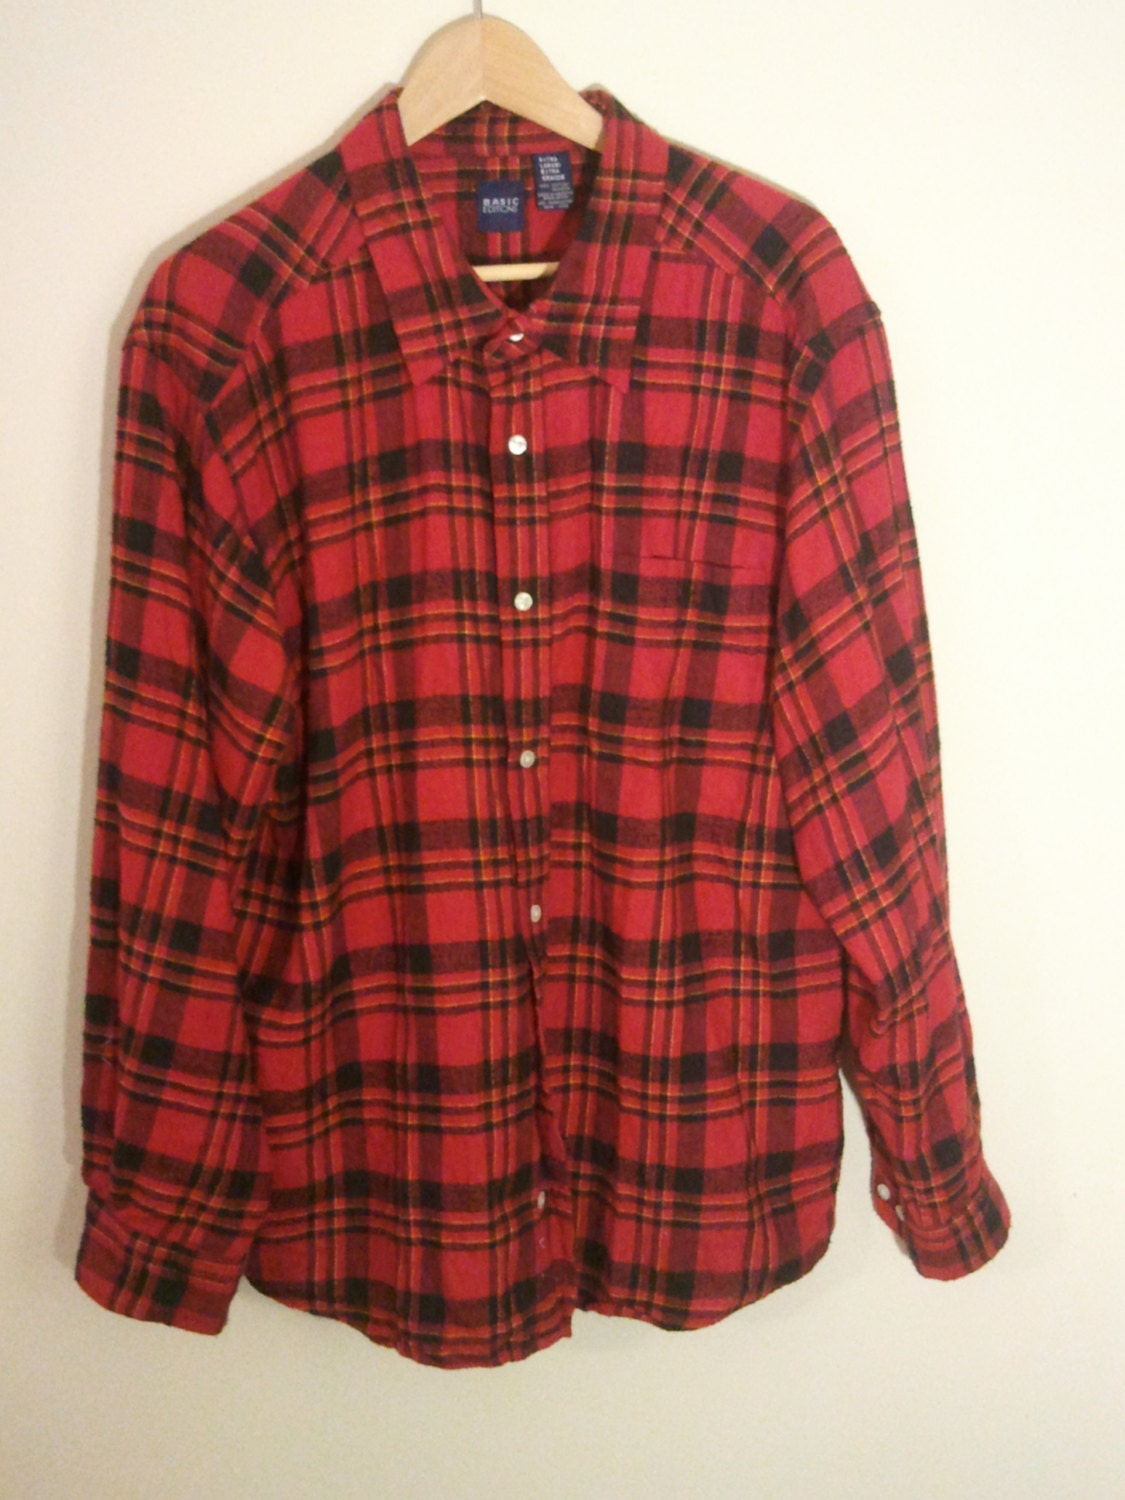 Punk Plaid Tartan Shirt Cotton Flannel Grunge 46 48 L Xl Red